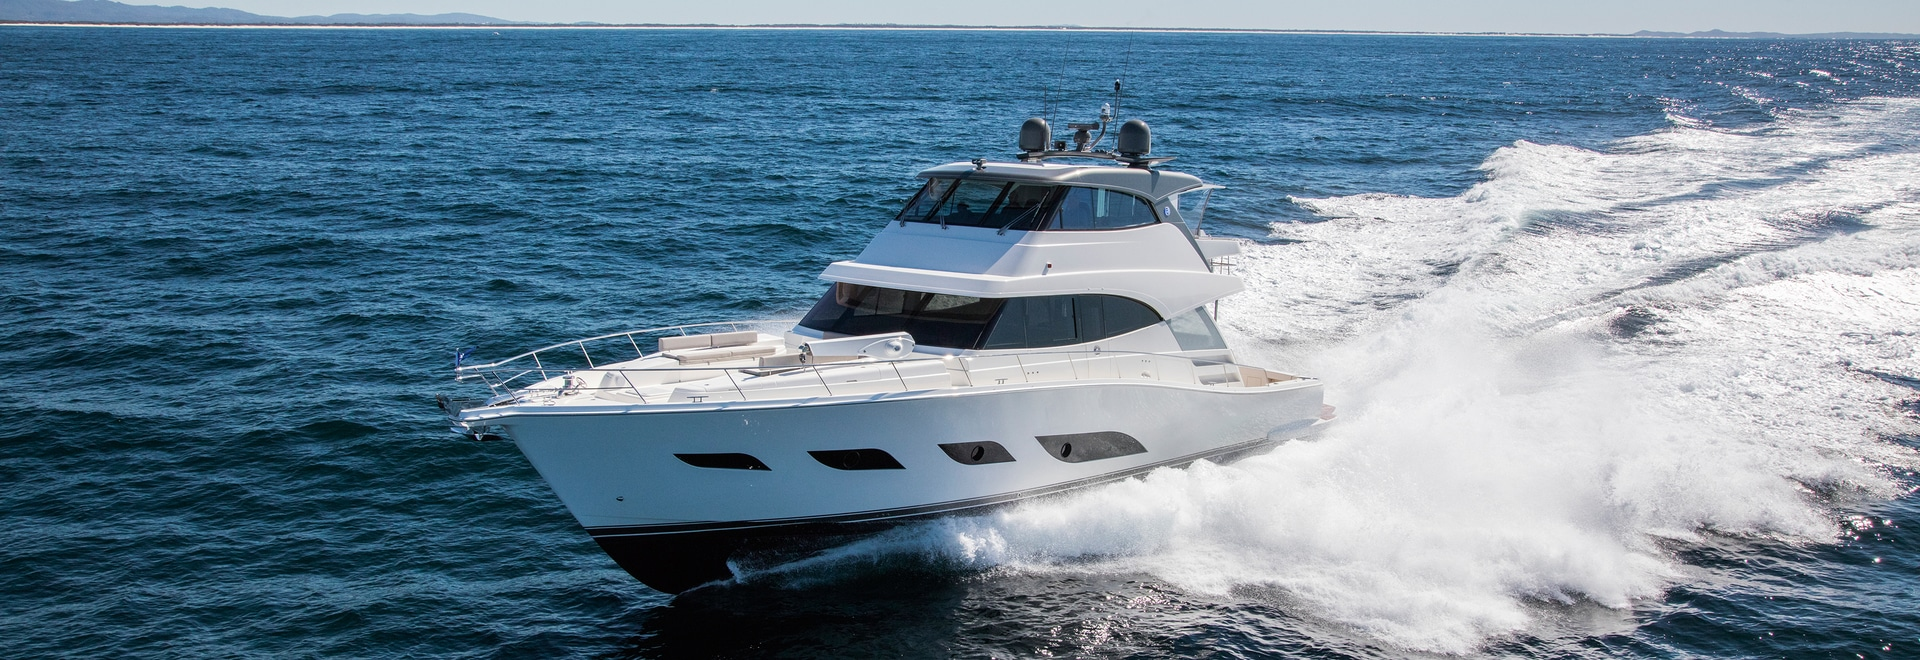 The strongest version of the twin engine system for the 68 Sports Motor Yacht produces impressive 3,800 hp (2,794 kW). © Riviera